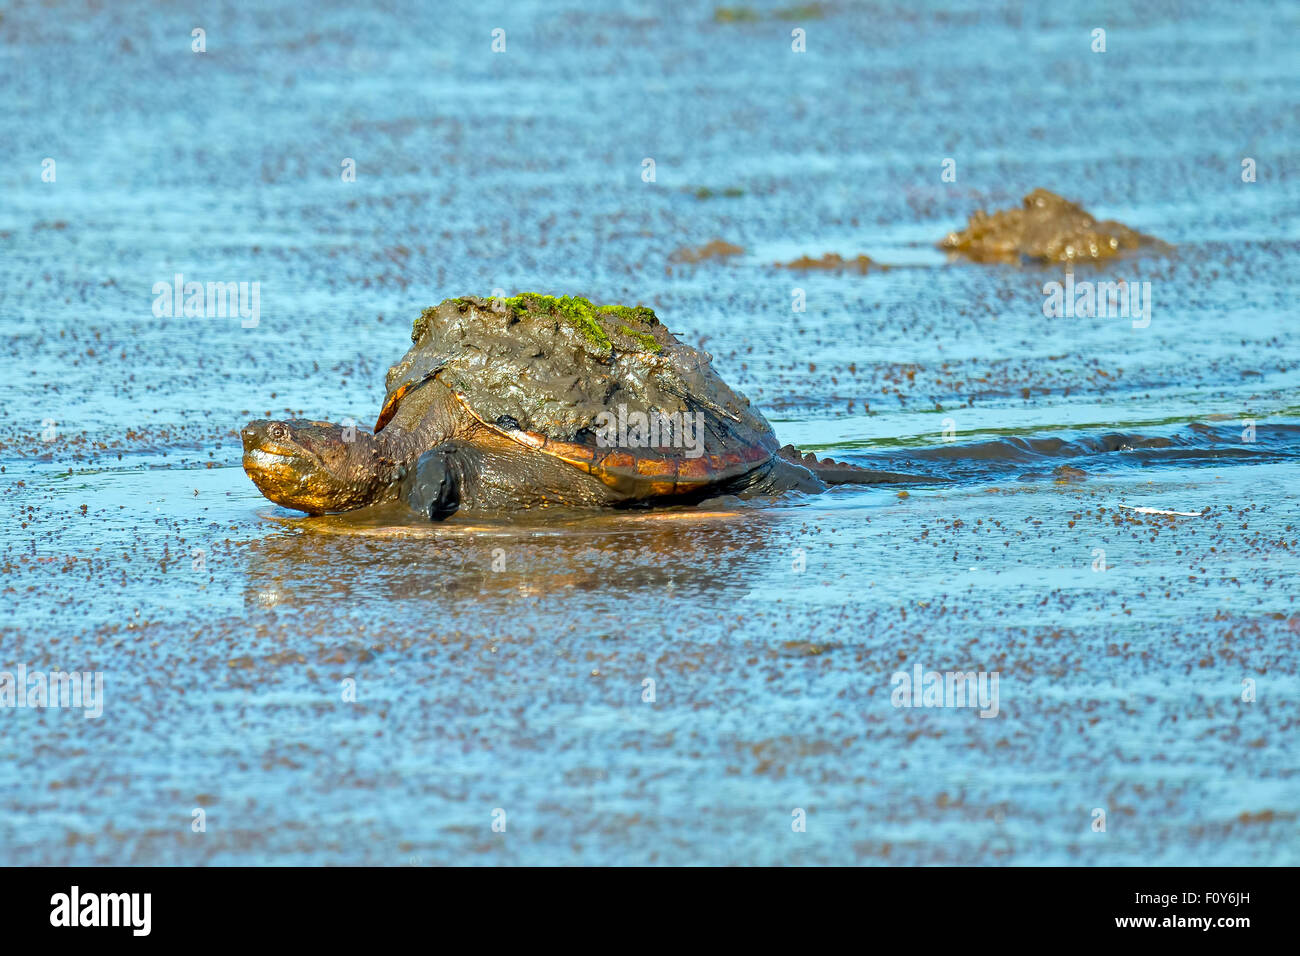 Common Snapping Turtle Moving through Muddy Marsh Stock Photo